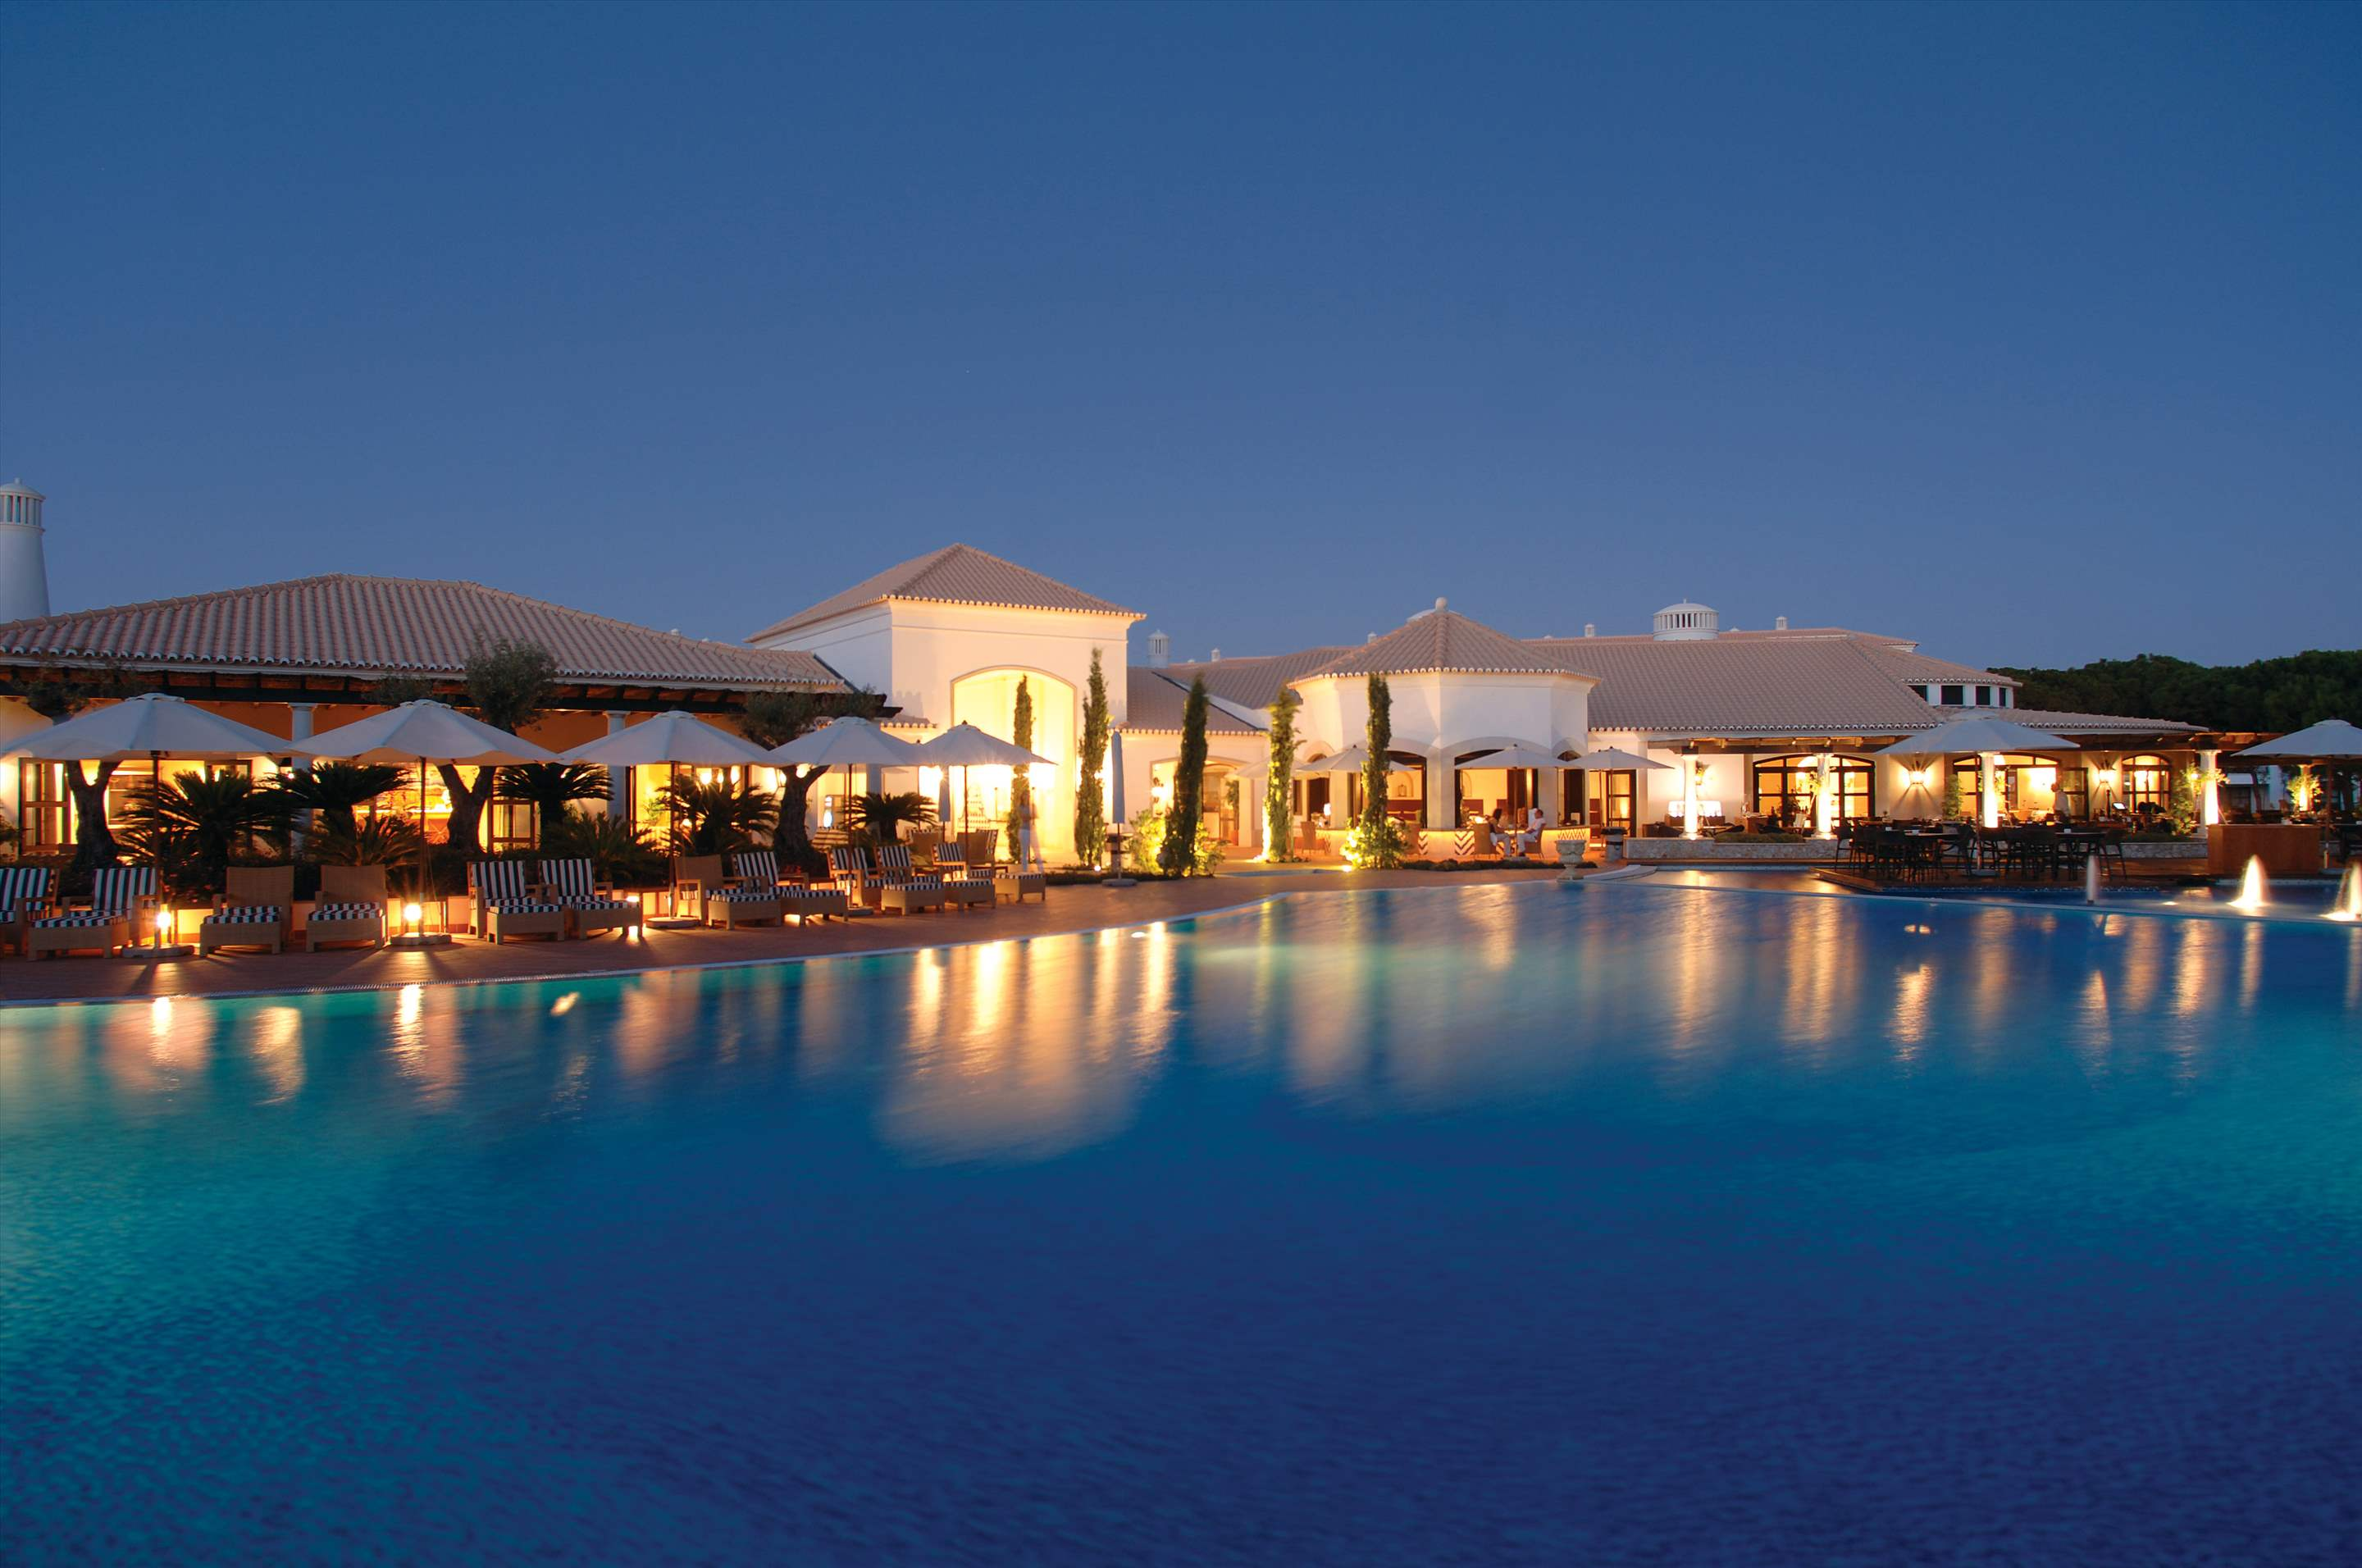 Pine Cliffs Residence, 3 bed luxury garden suite, 3 bedroom apartment in Pine Cliffs Resort, Algarve Photo #25